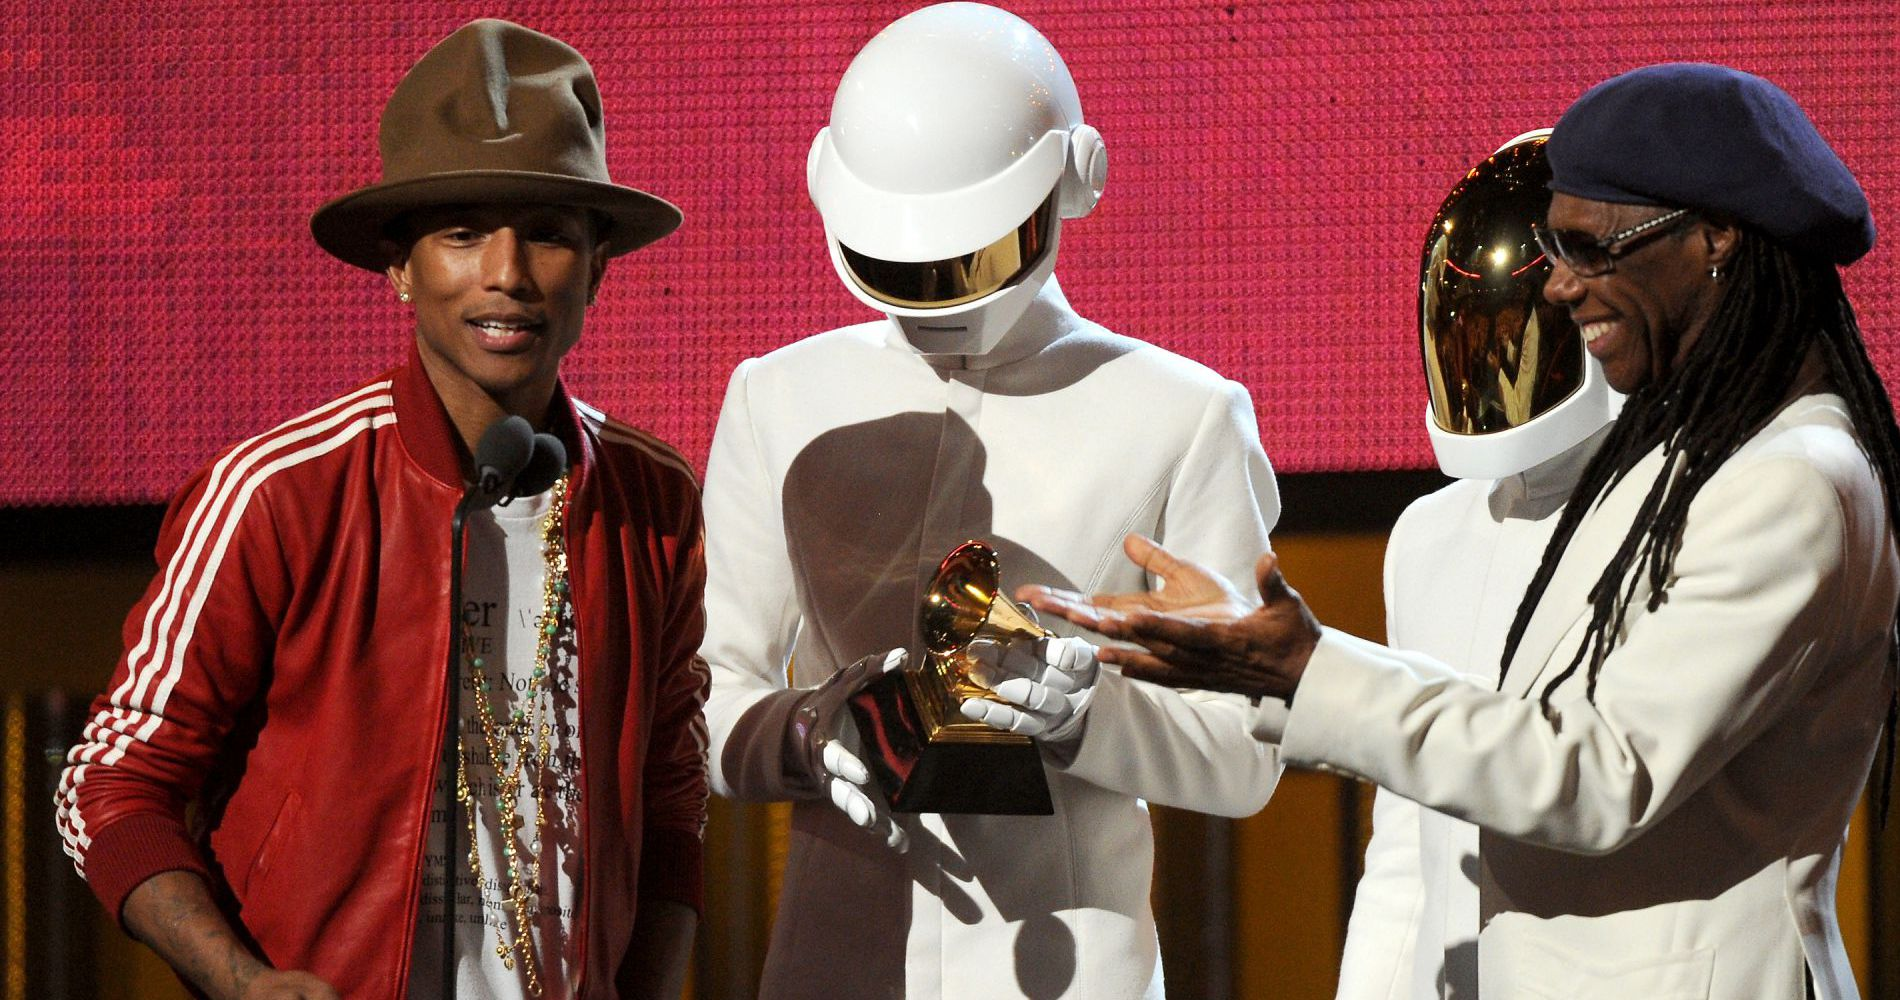 Le Mountain Hat de Pharrell Williams s'expose au musée